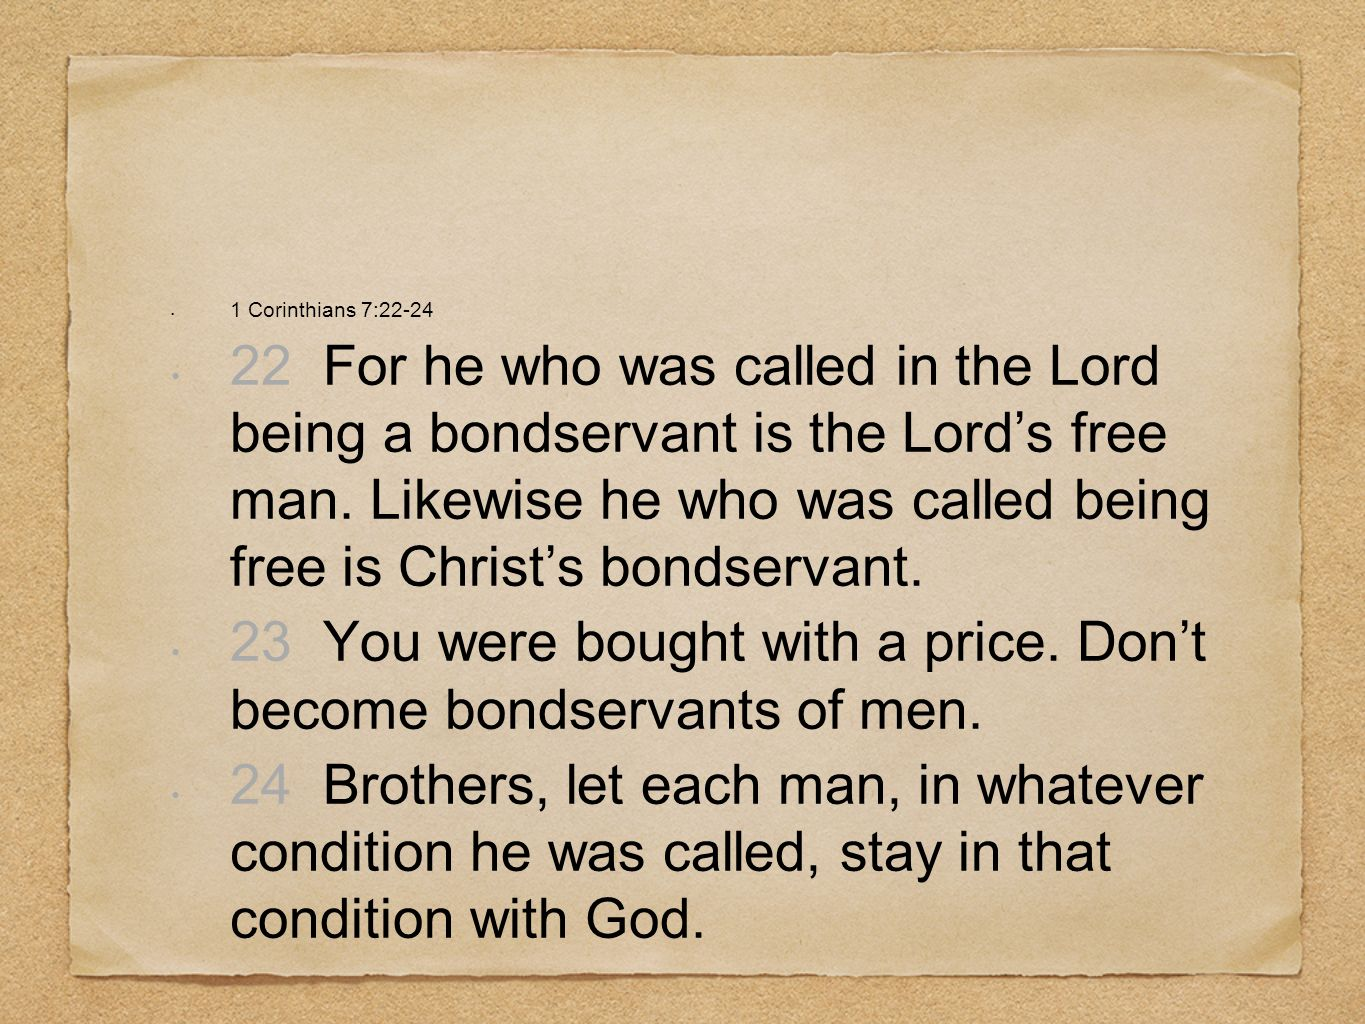 23 You were bought with a price. Don't become bondservants of men.